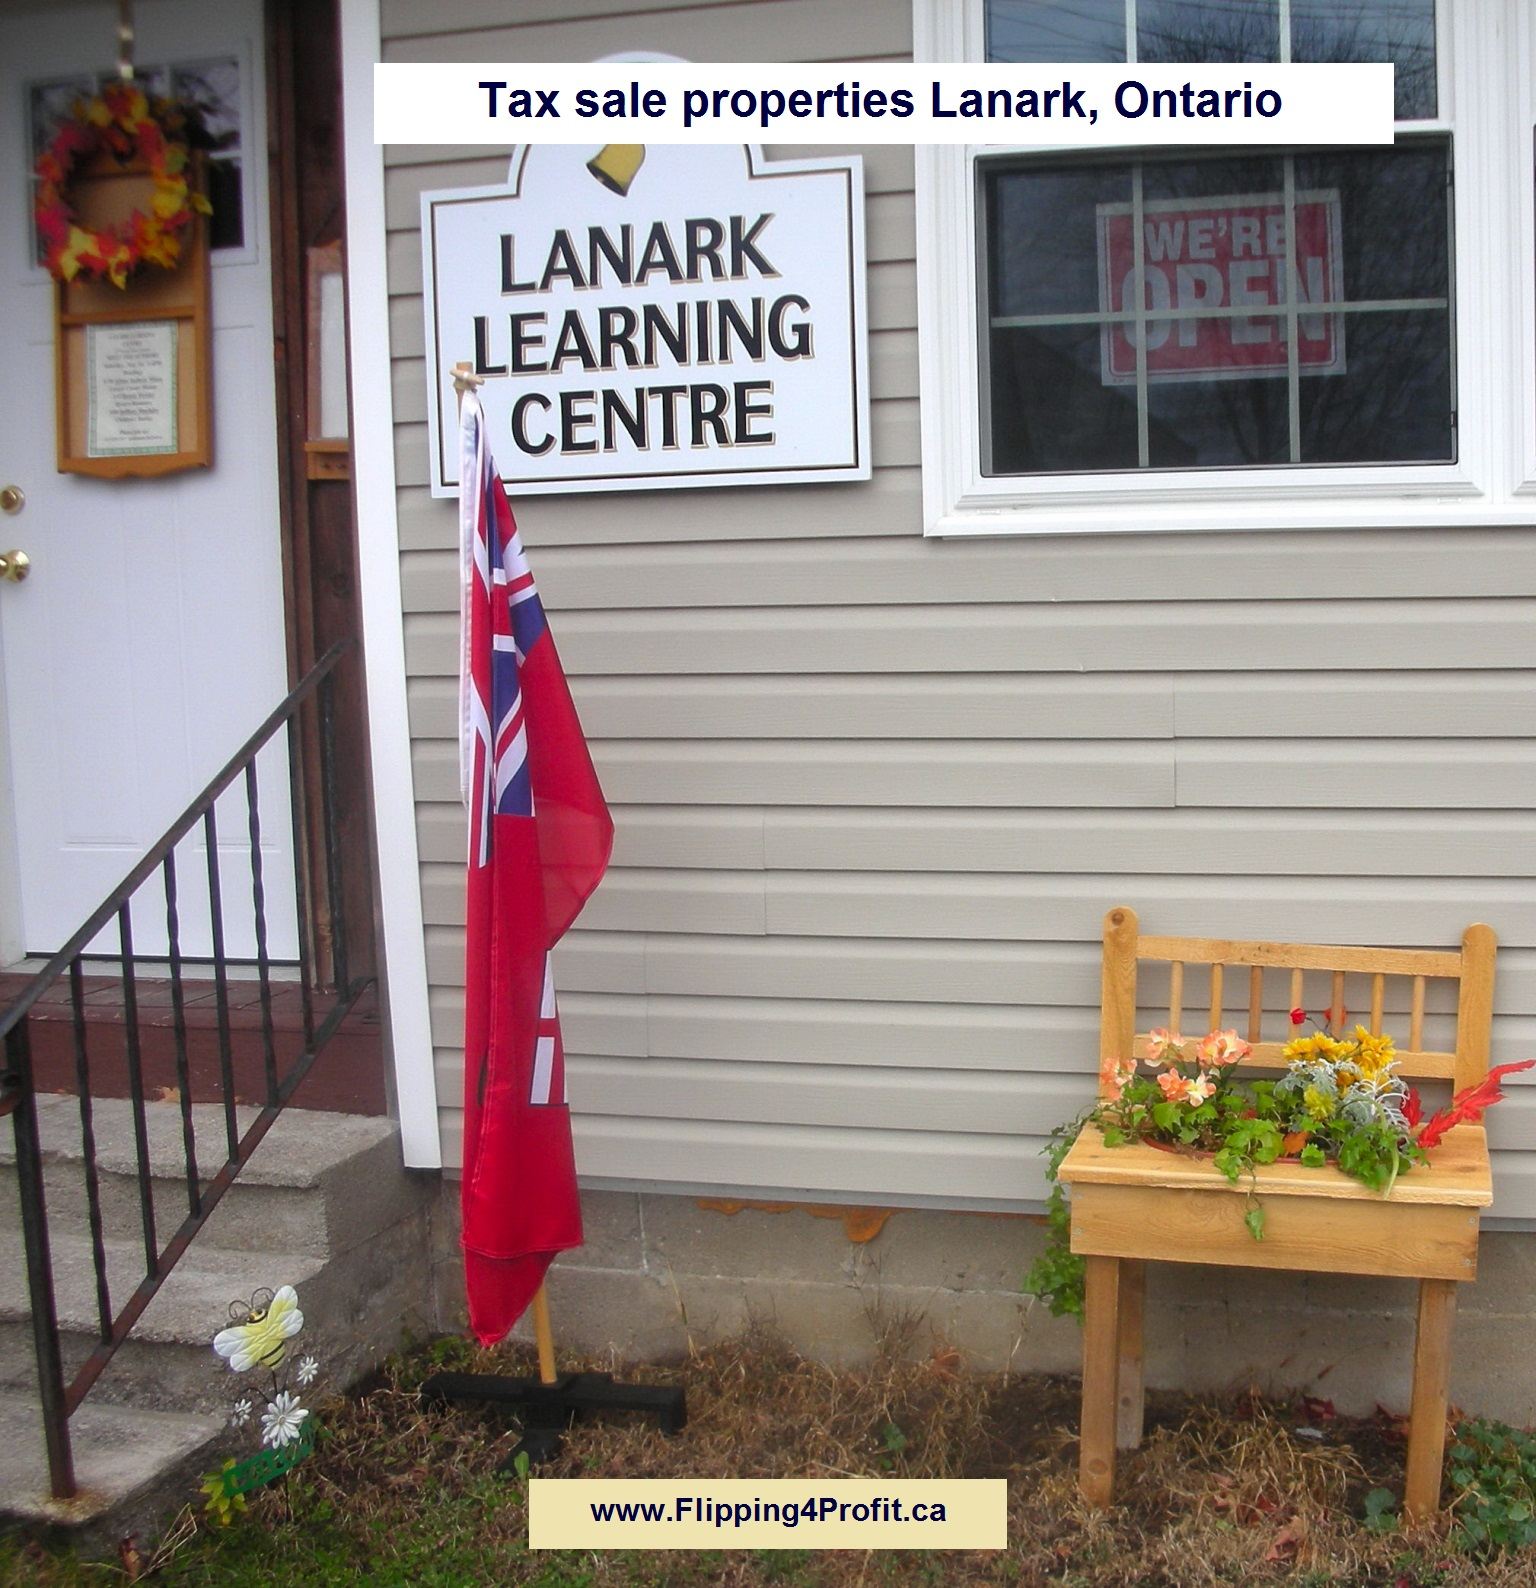 Tax sale properties Lanark, Ontario